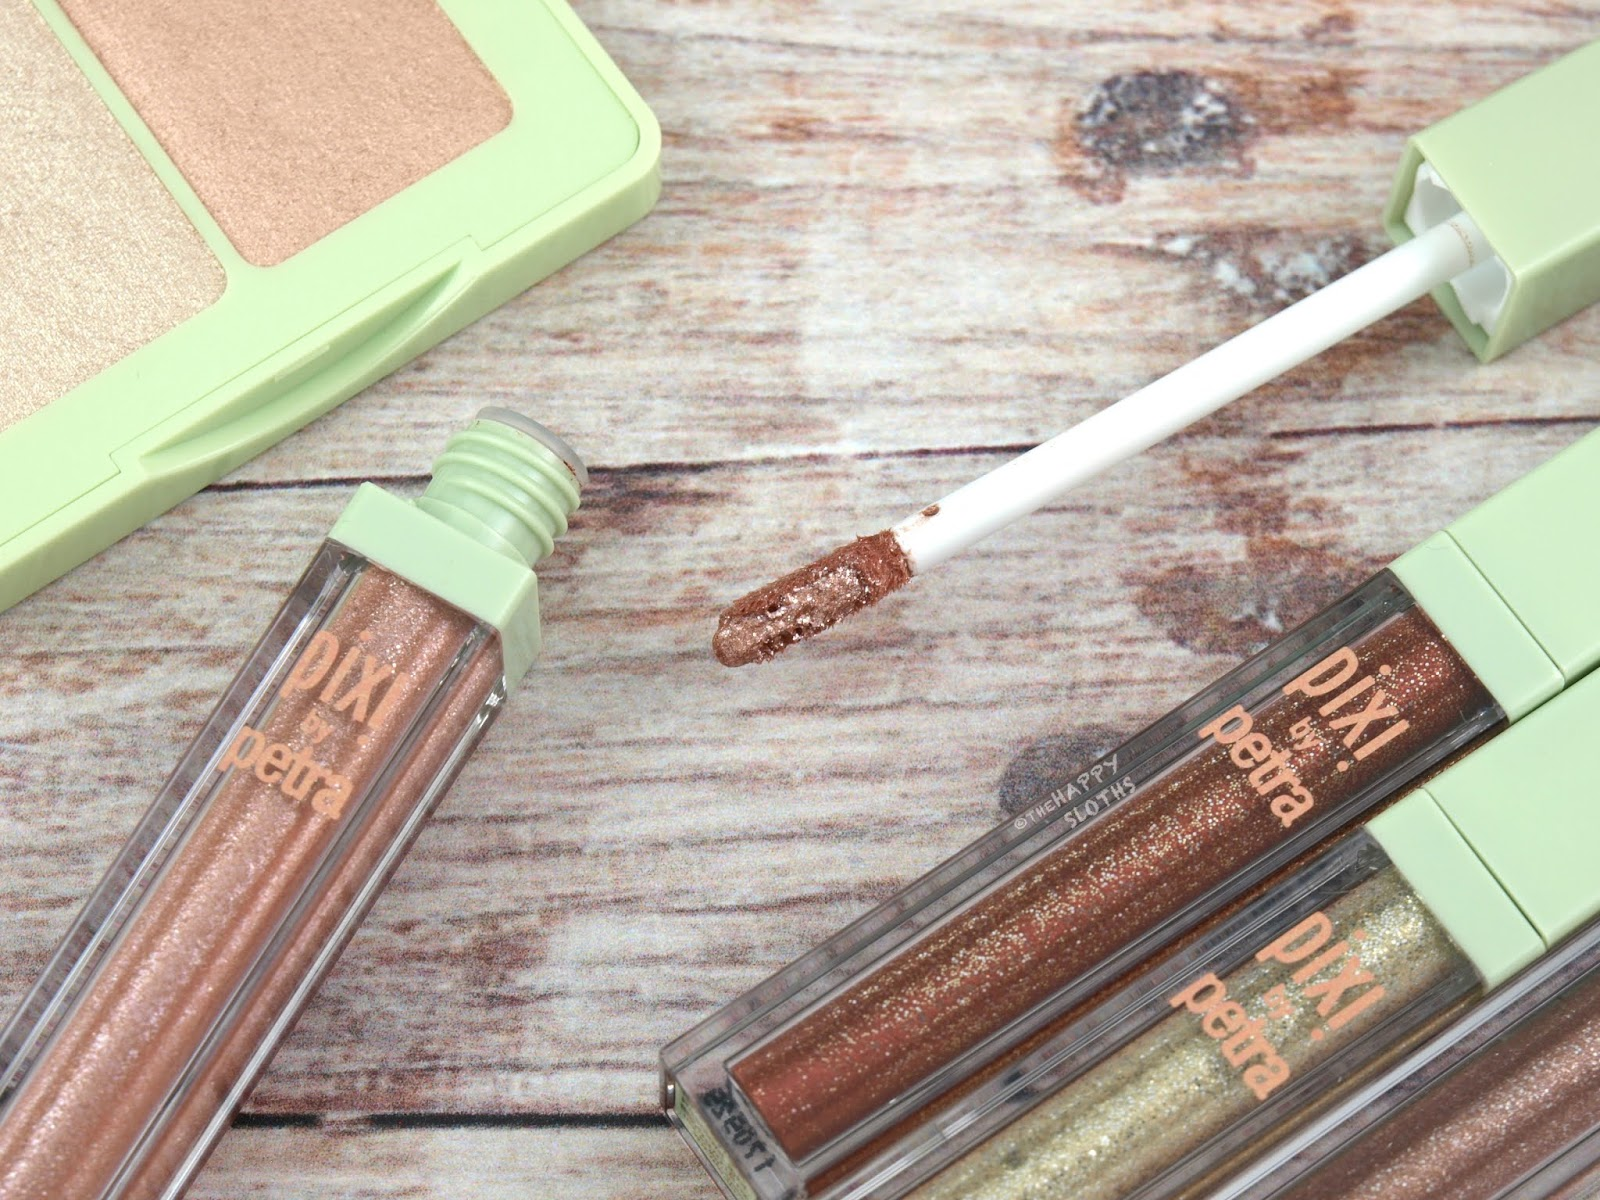 Pixi | Liquid Fairy Lights Eyeshadow: Review and Swatches